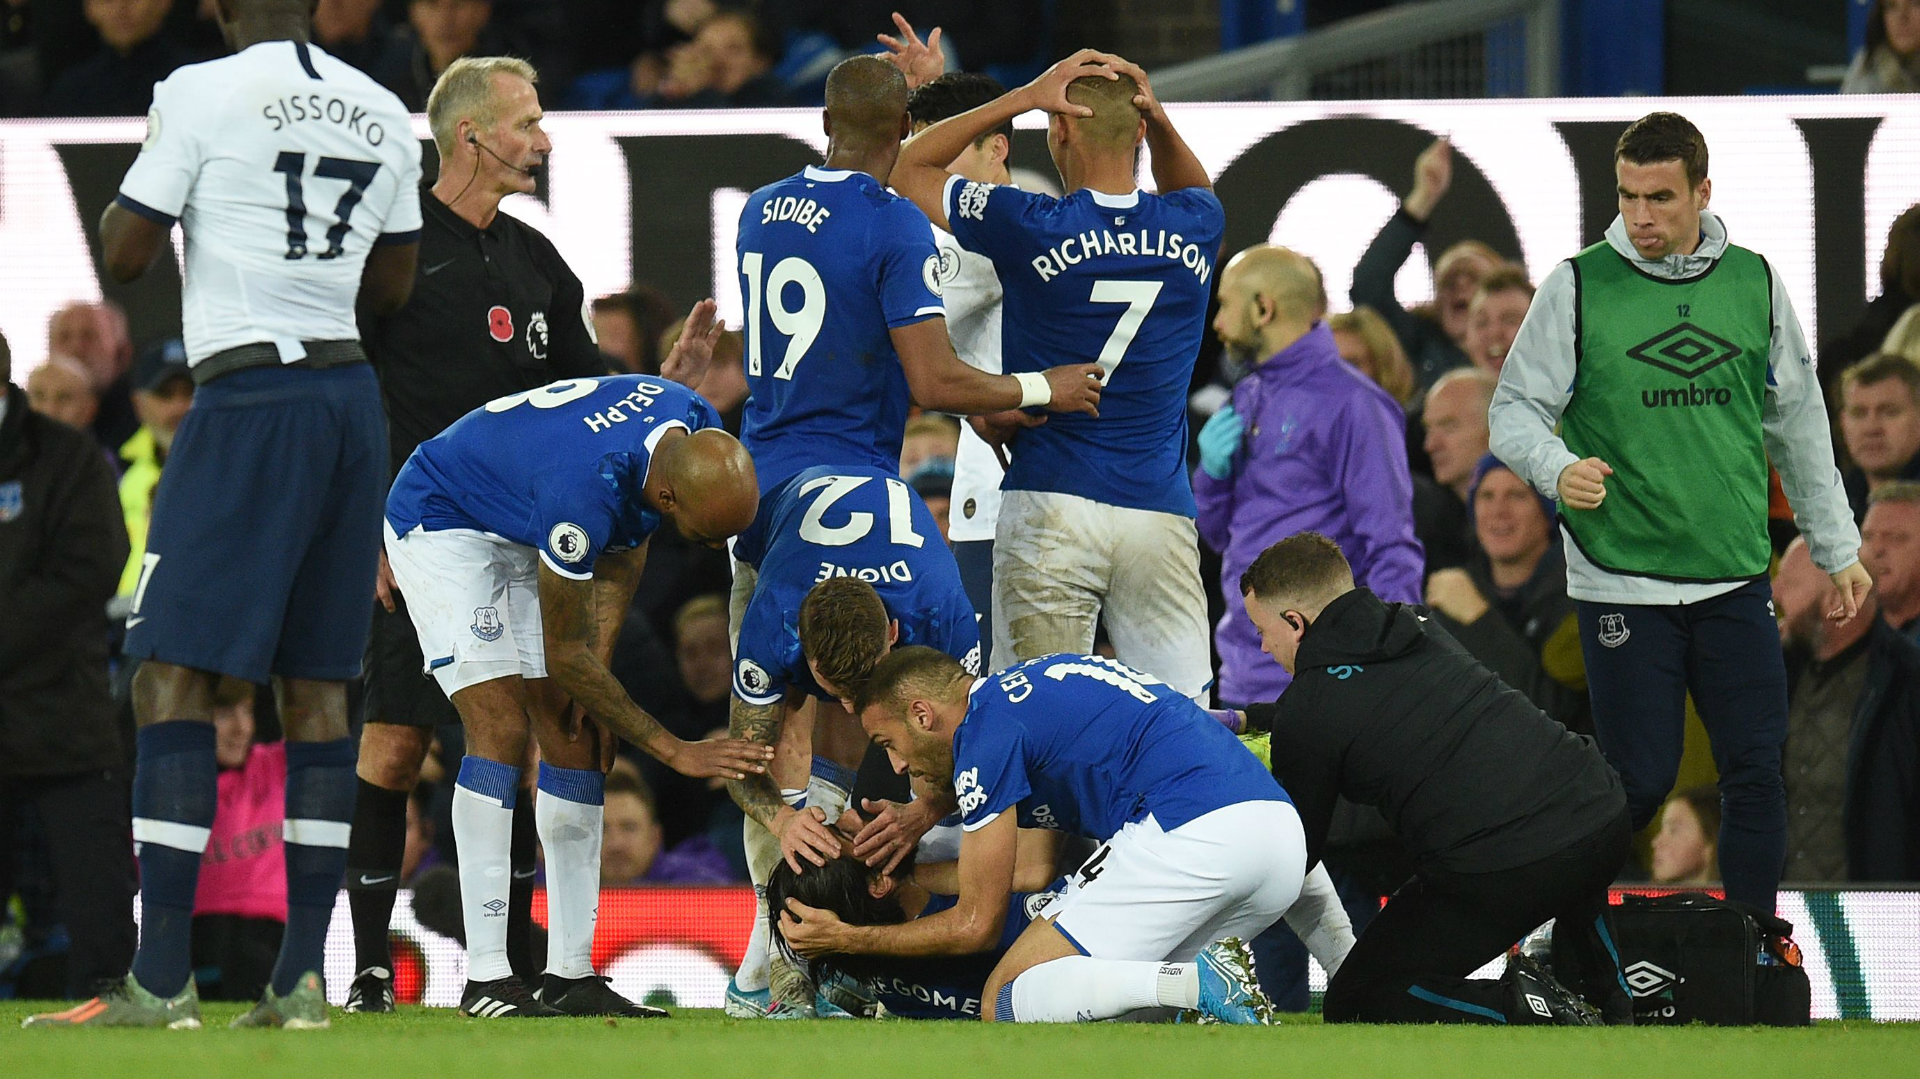 Andre Gomes injury: When will Everton star recover from horrific leg break?